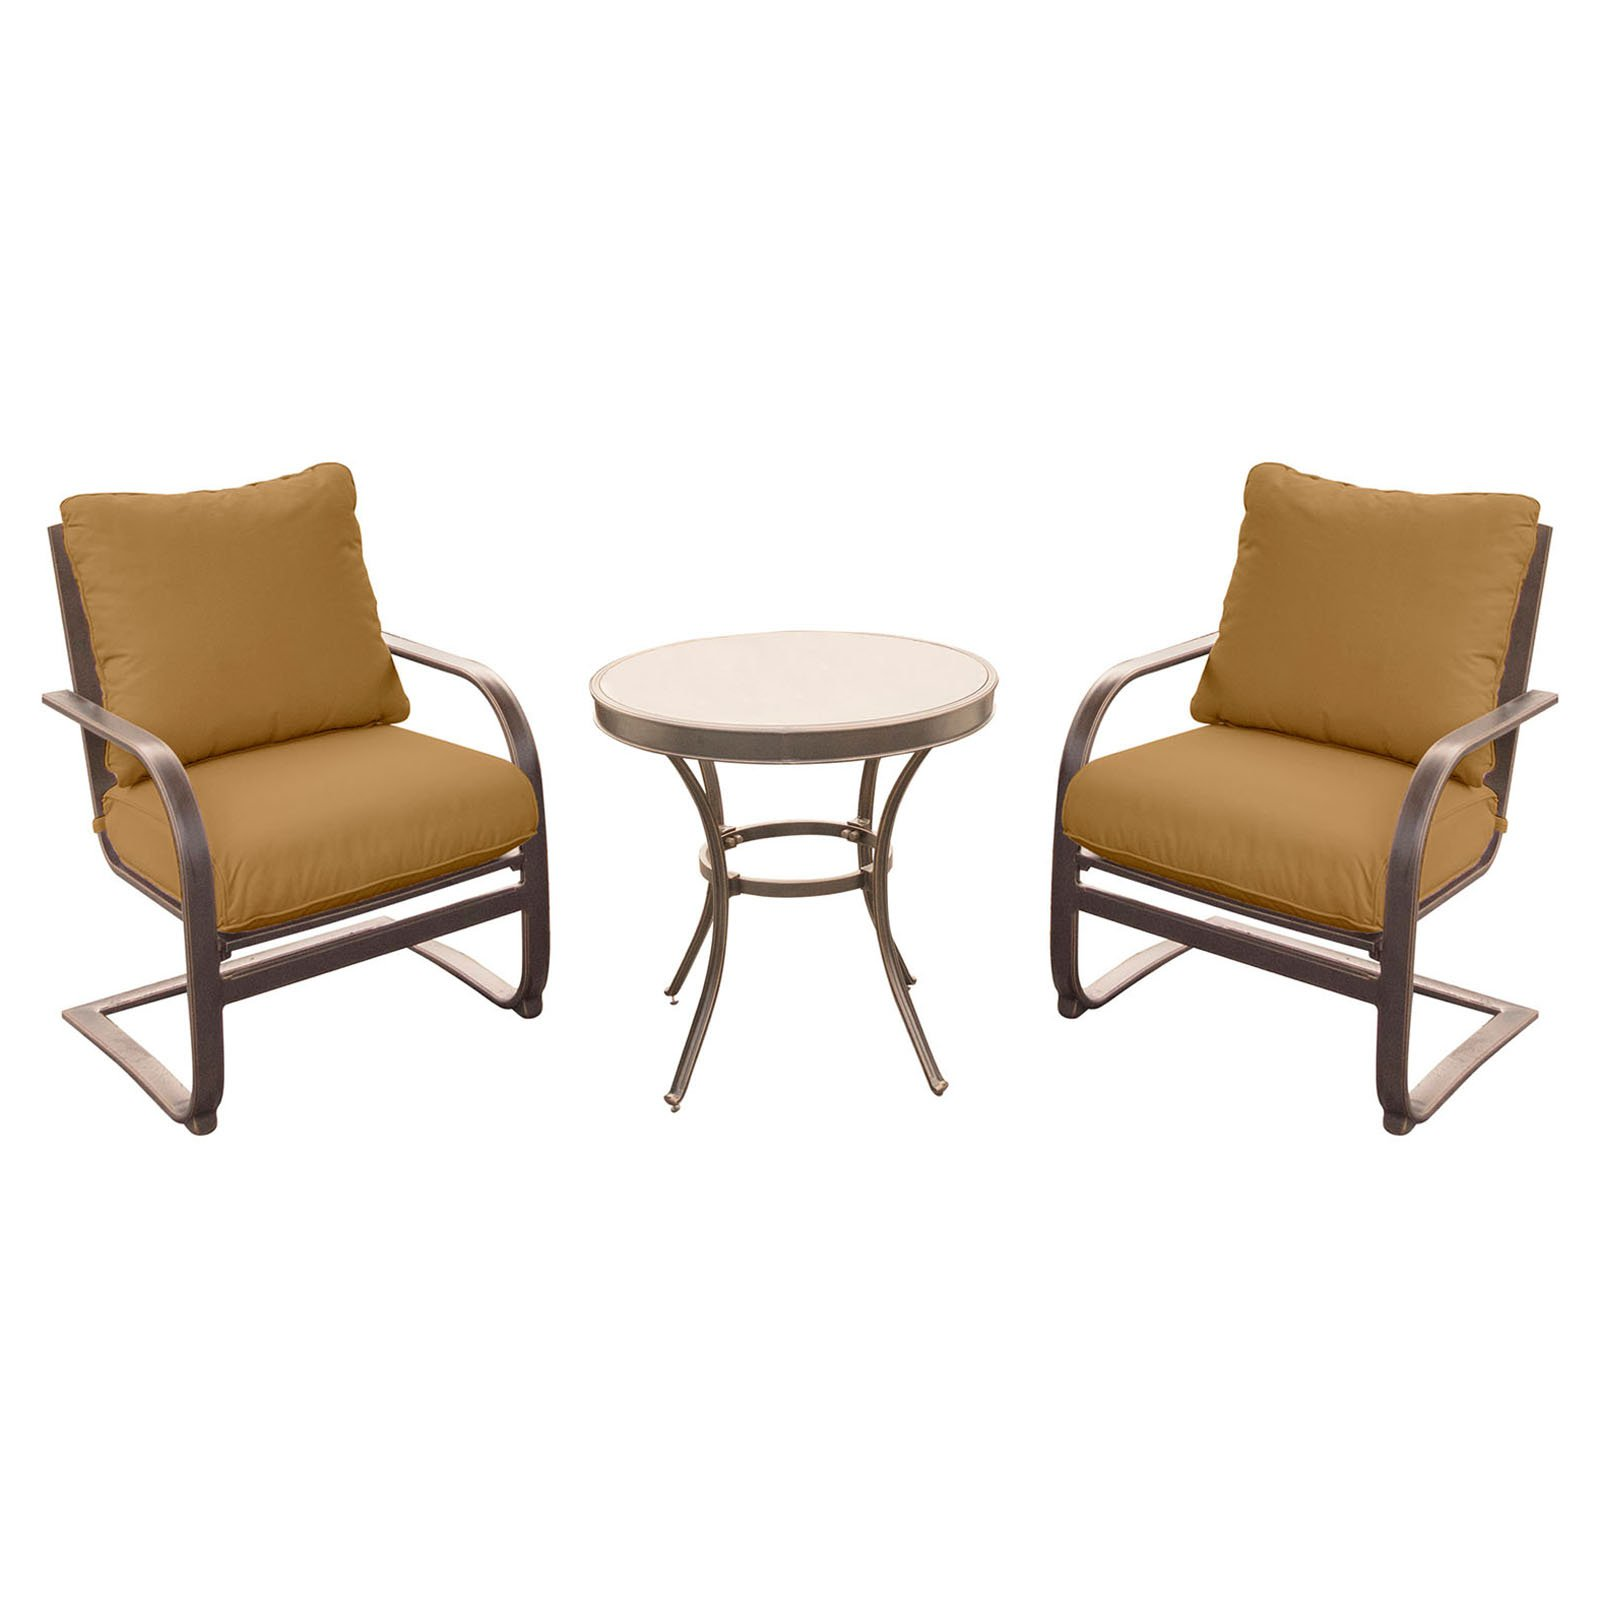 Hanover Outdoor Summer Nights 3-Piece Chat Set with Glass-Top Table and C-Spring Chairs in Desert Sunset